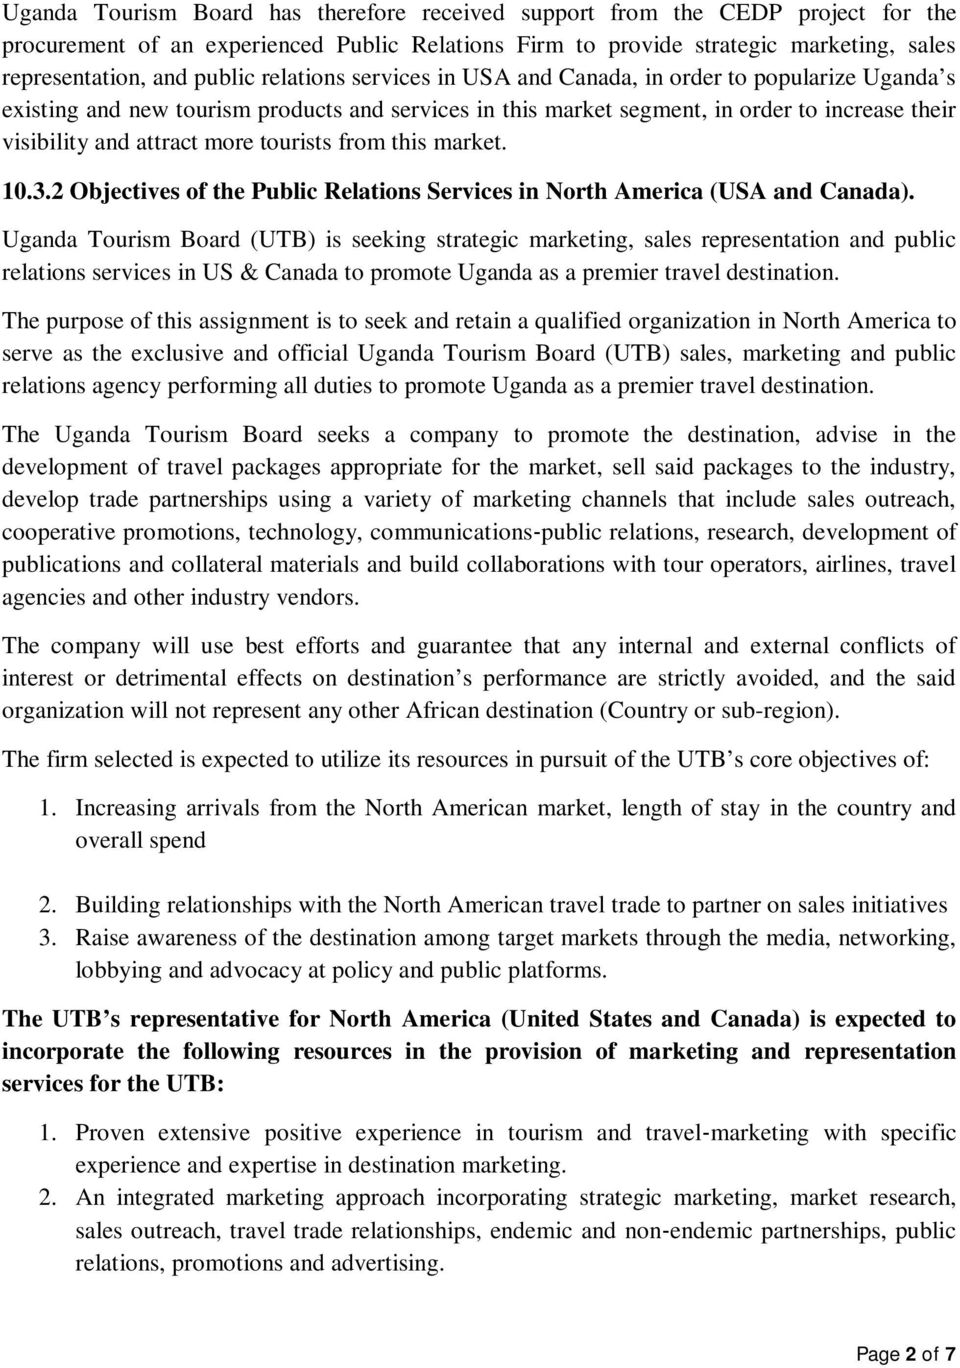 tourists from this market. 10.3.2 Objectives of the Public Relations Services in North America (USA and Canada).